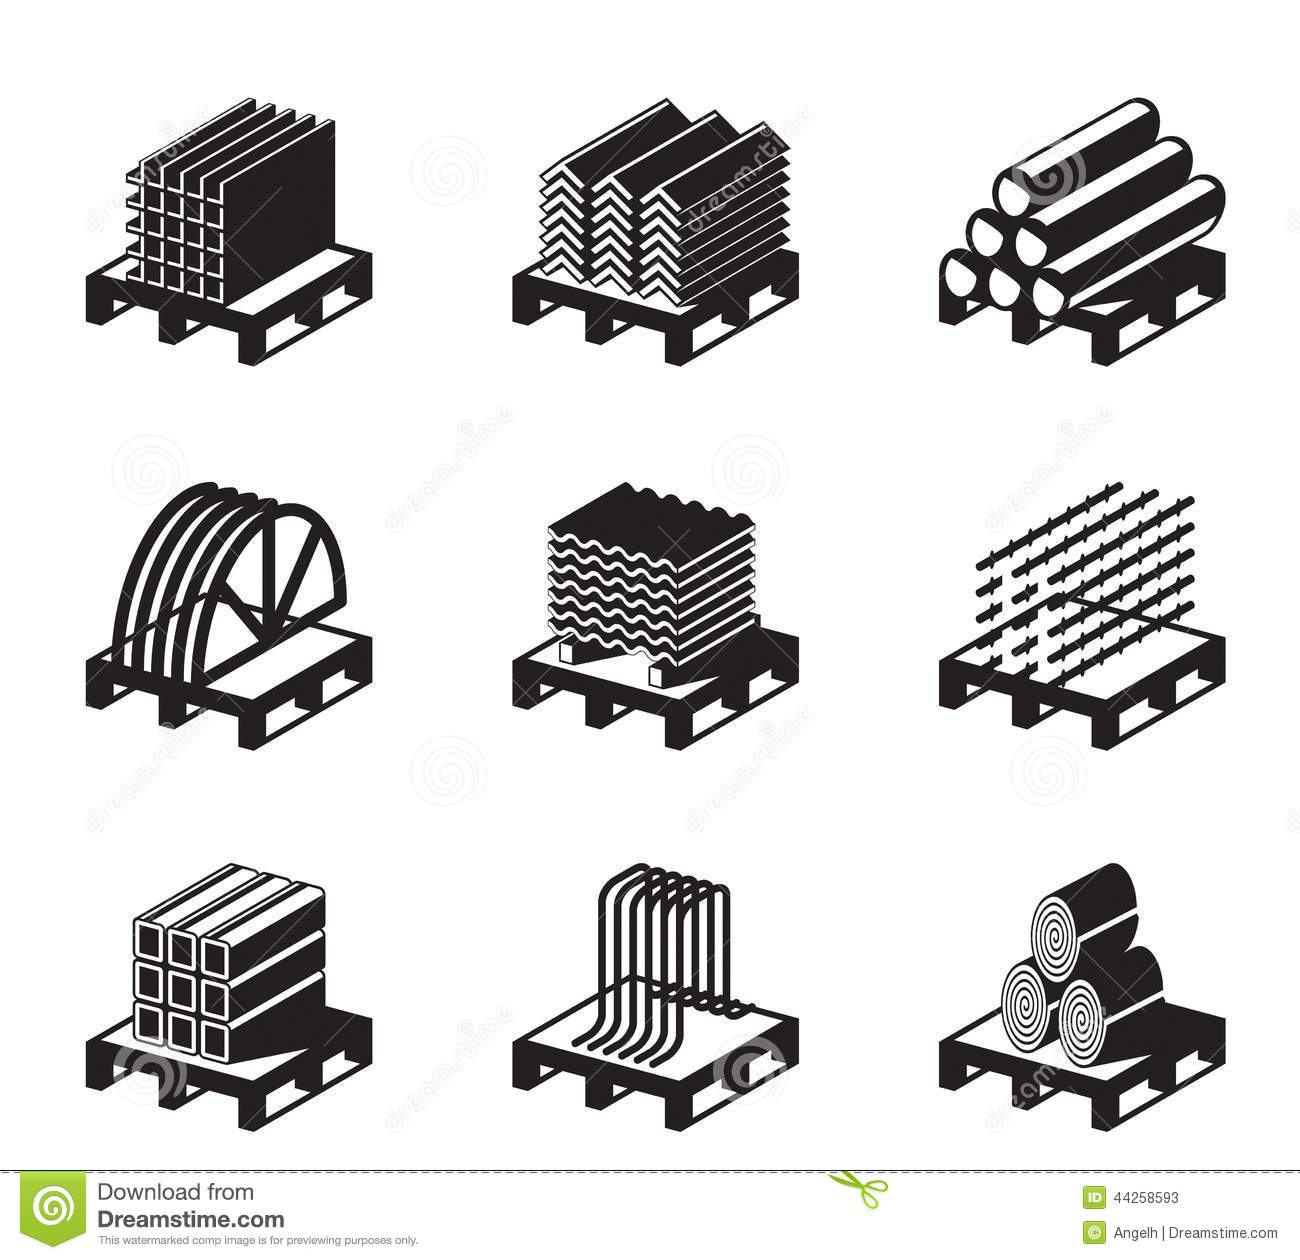 Raw material clipart.